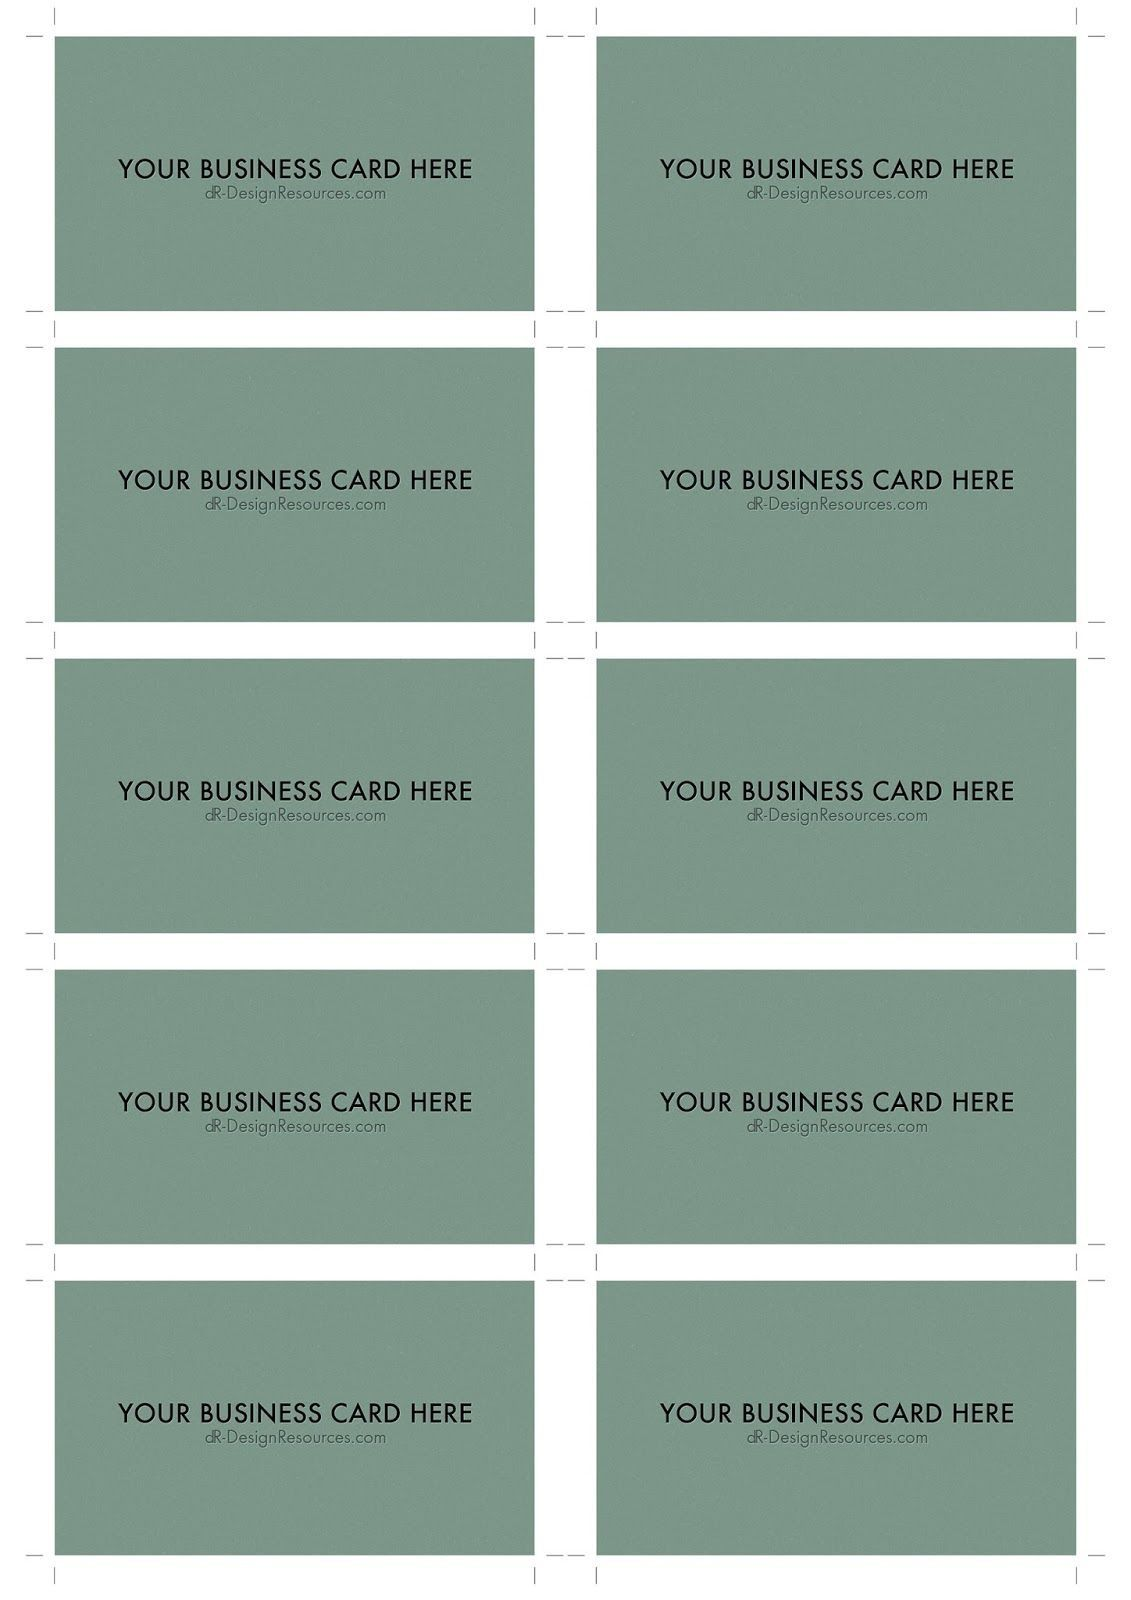 000 Surprising Blank Busines Card Template Photoshop Inspiration  Free Download PsdFull